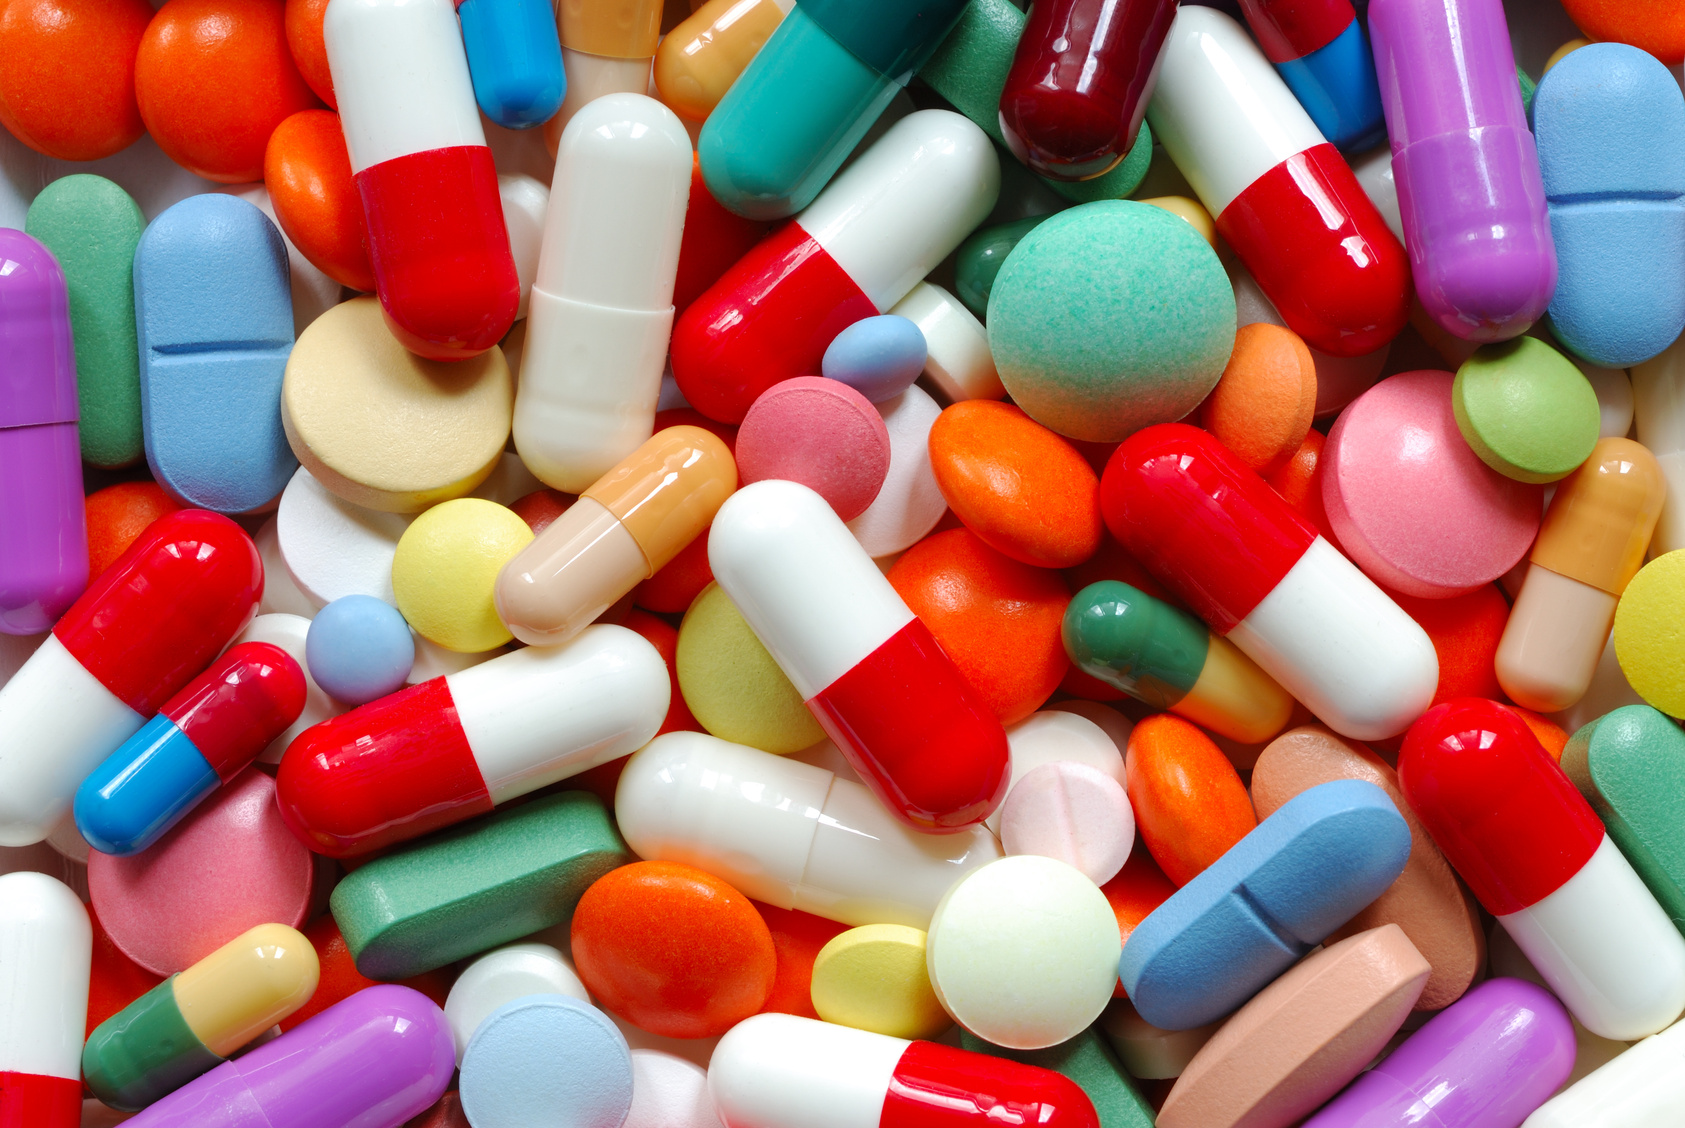 Over prescription of antibiotics is a real issue in healthcare.